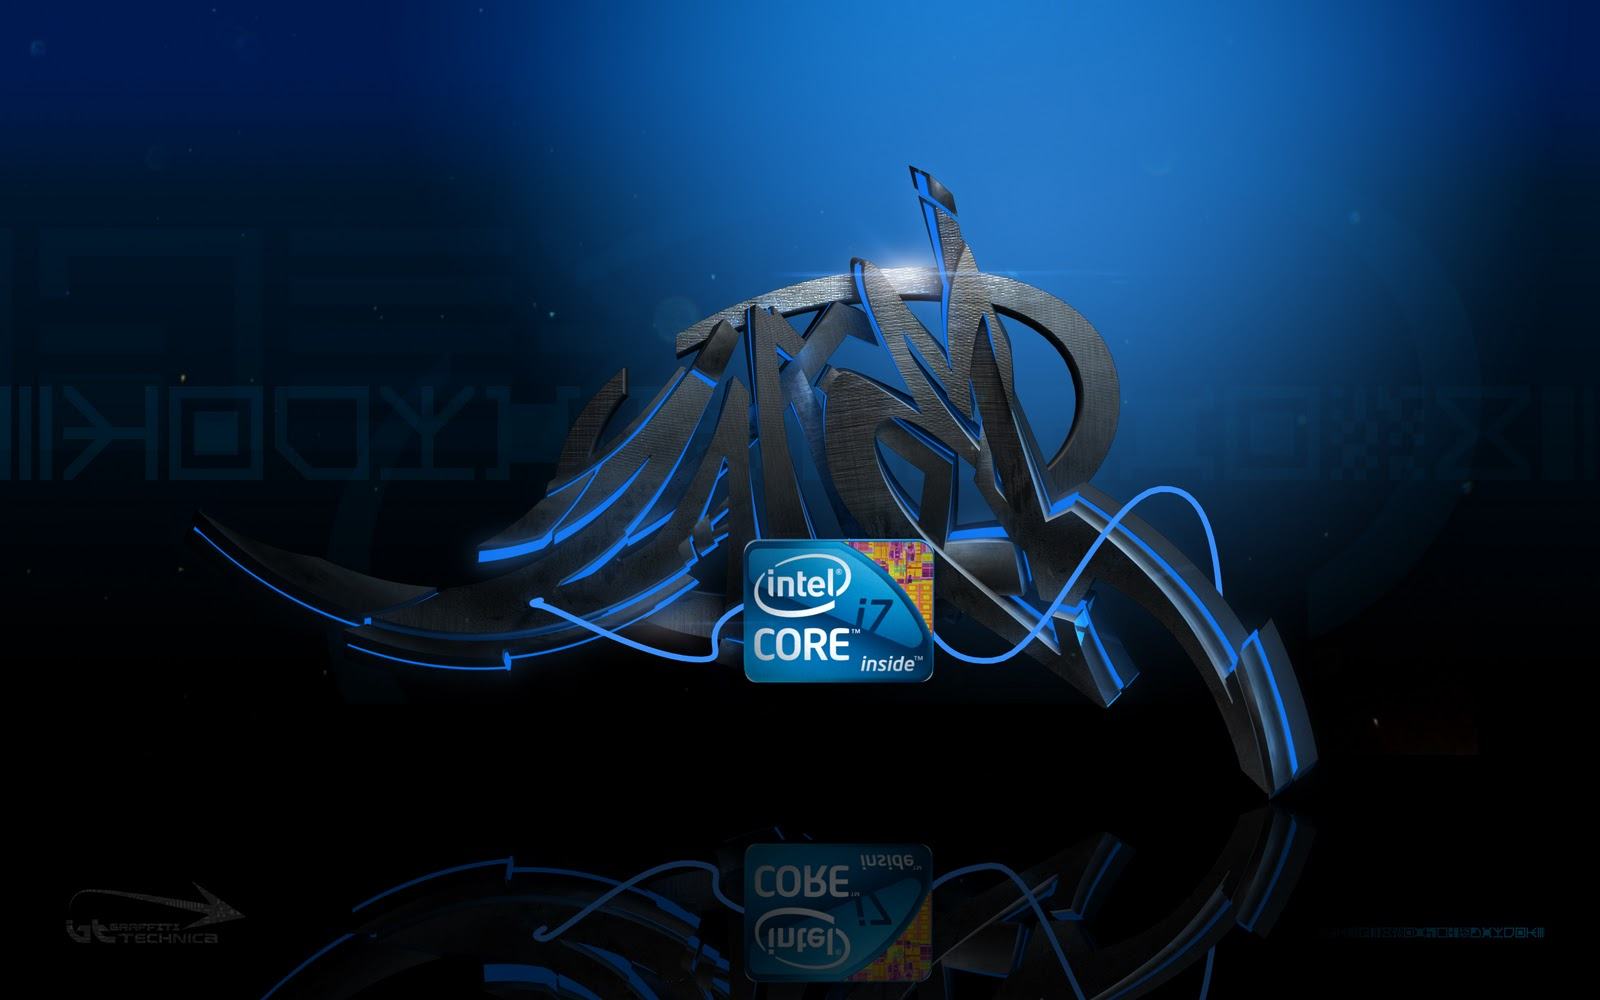 Intel Core Ix1080